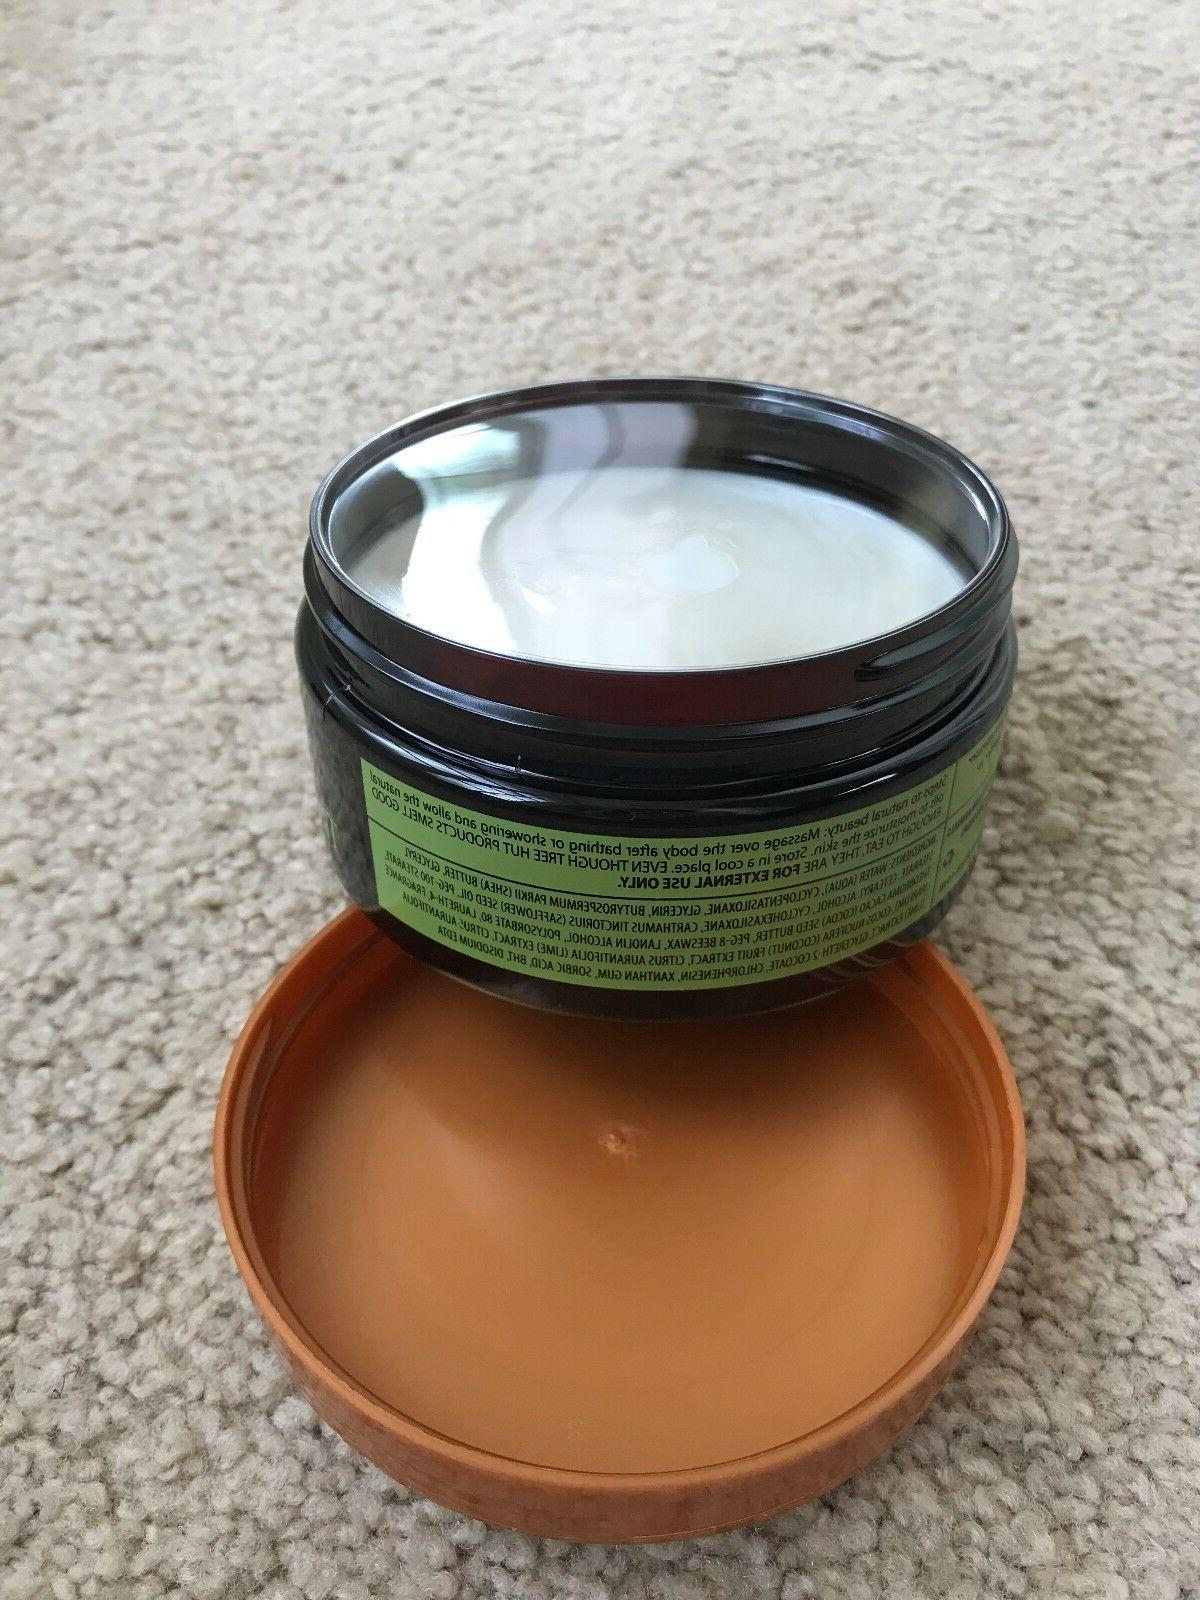 Tree Hut Shea Butter Lime oz. New Seal